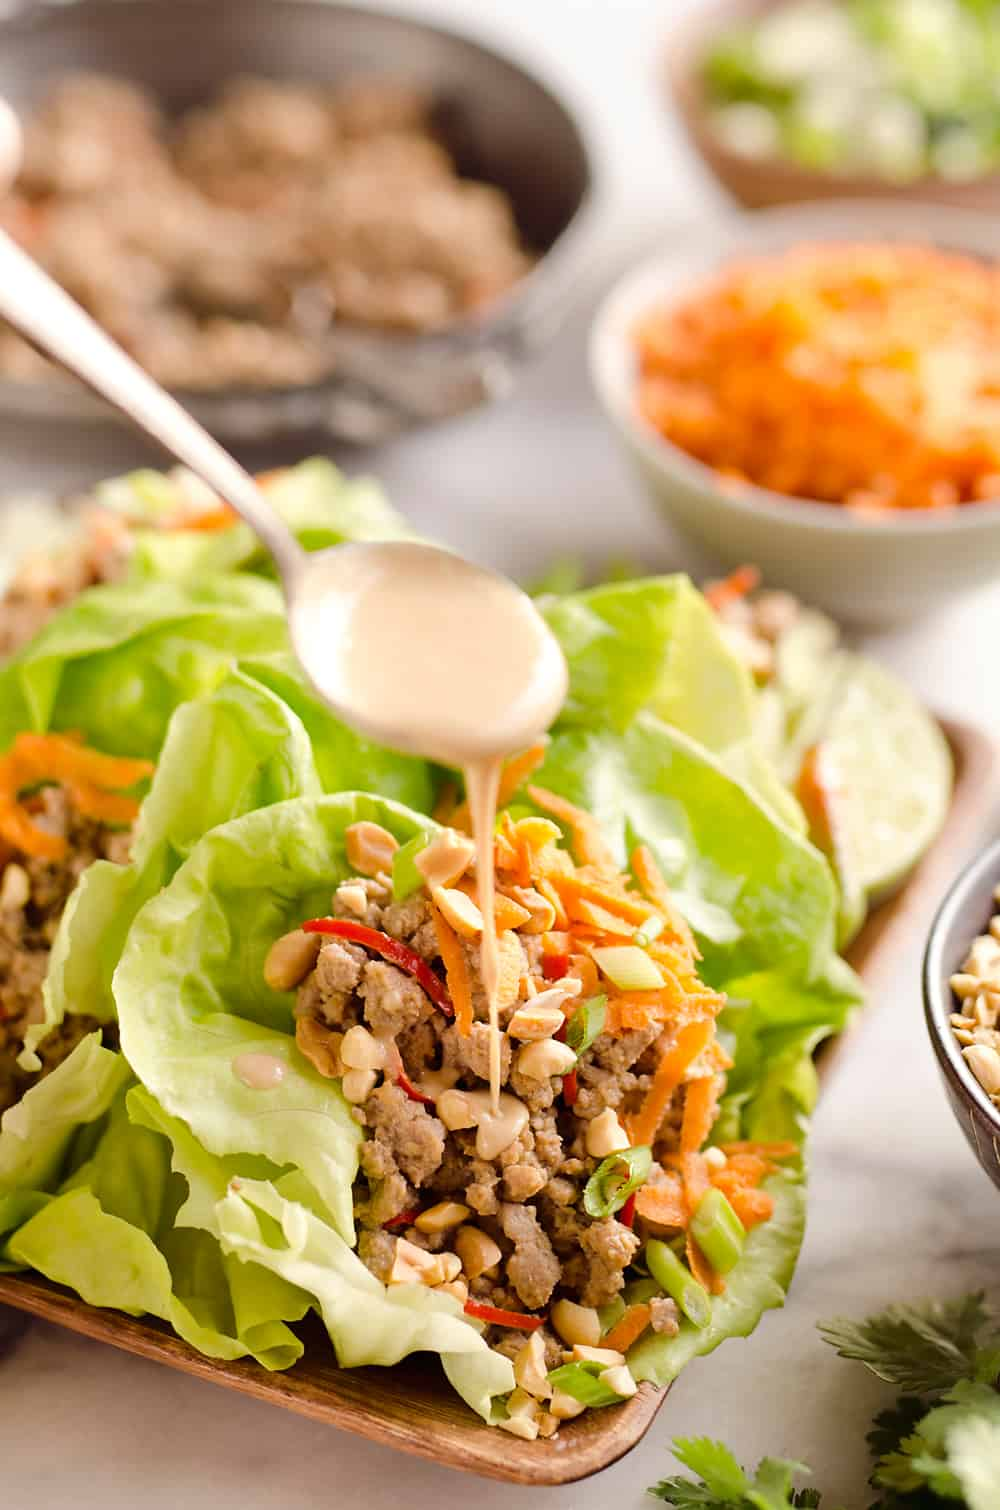 Turkey Thai Peanut Lettuce Wraps are a light and healthy dinner idea packed with filling ground turkey, fresh vegetables and crunch peanuts. This is a dinner idea you can enjoy over and over, it is simply that good!